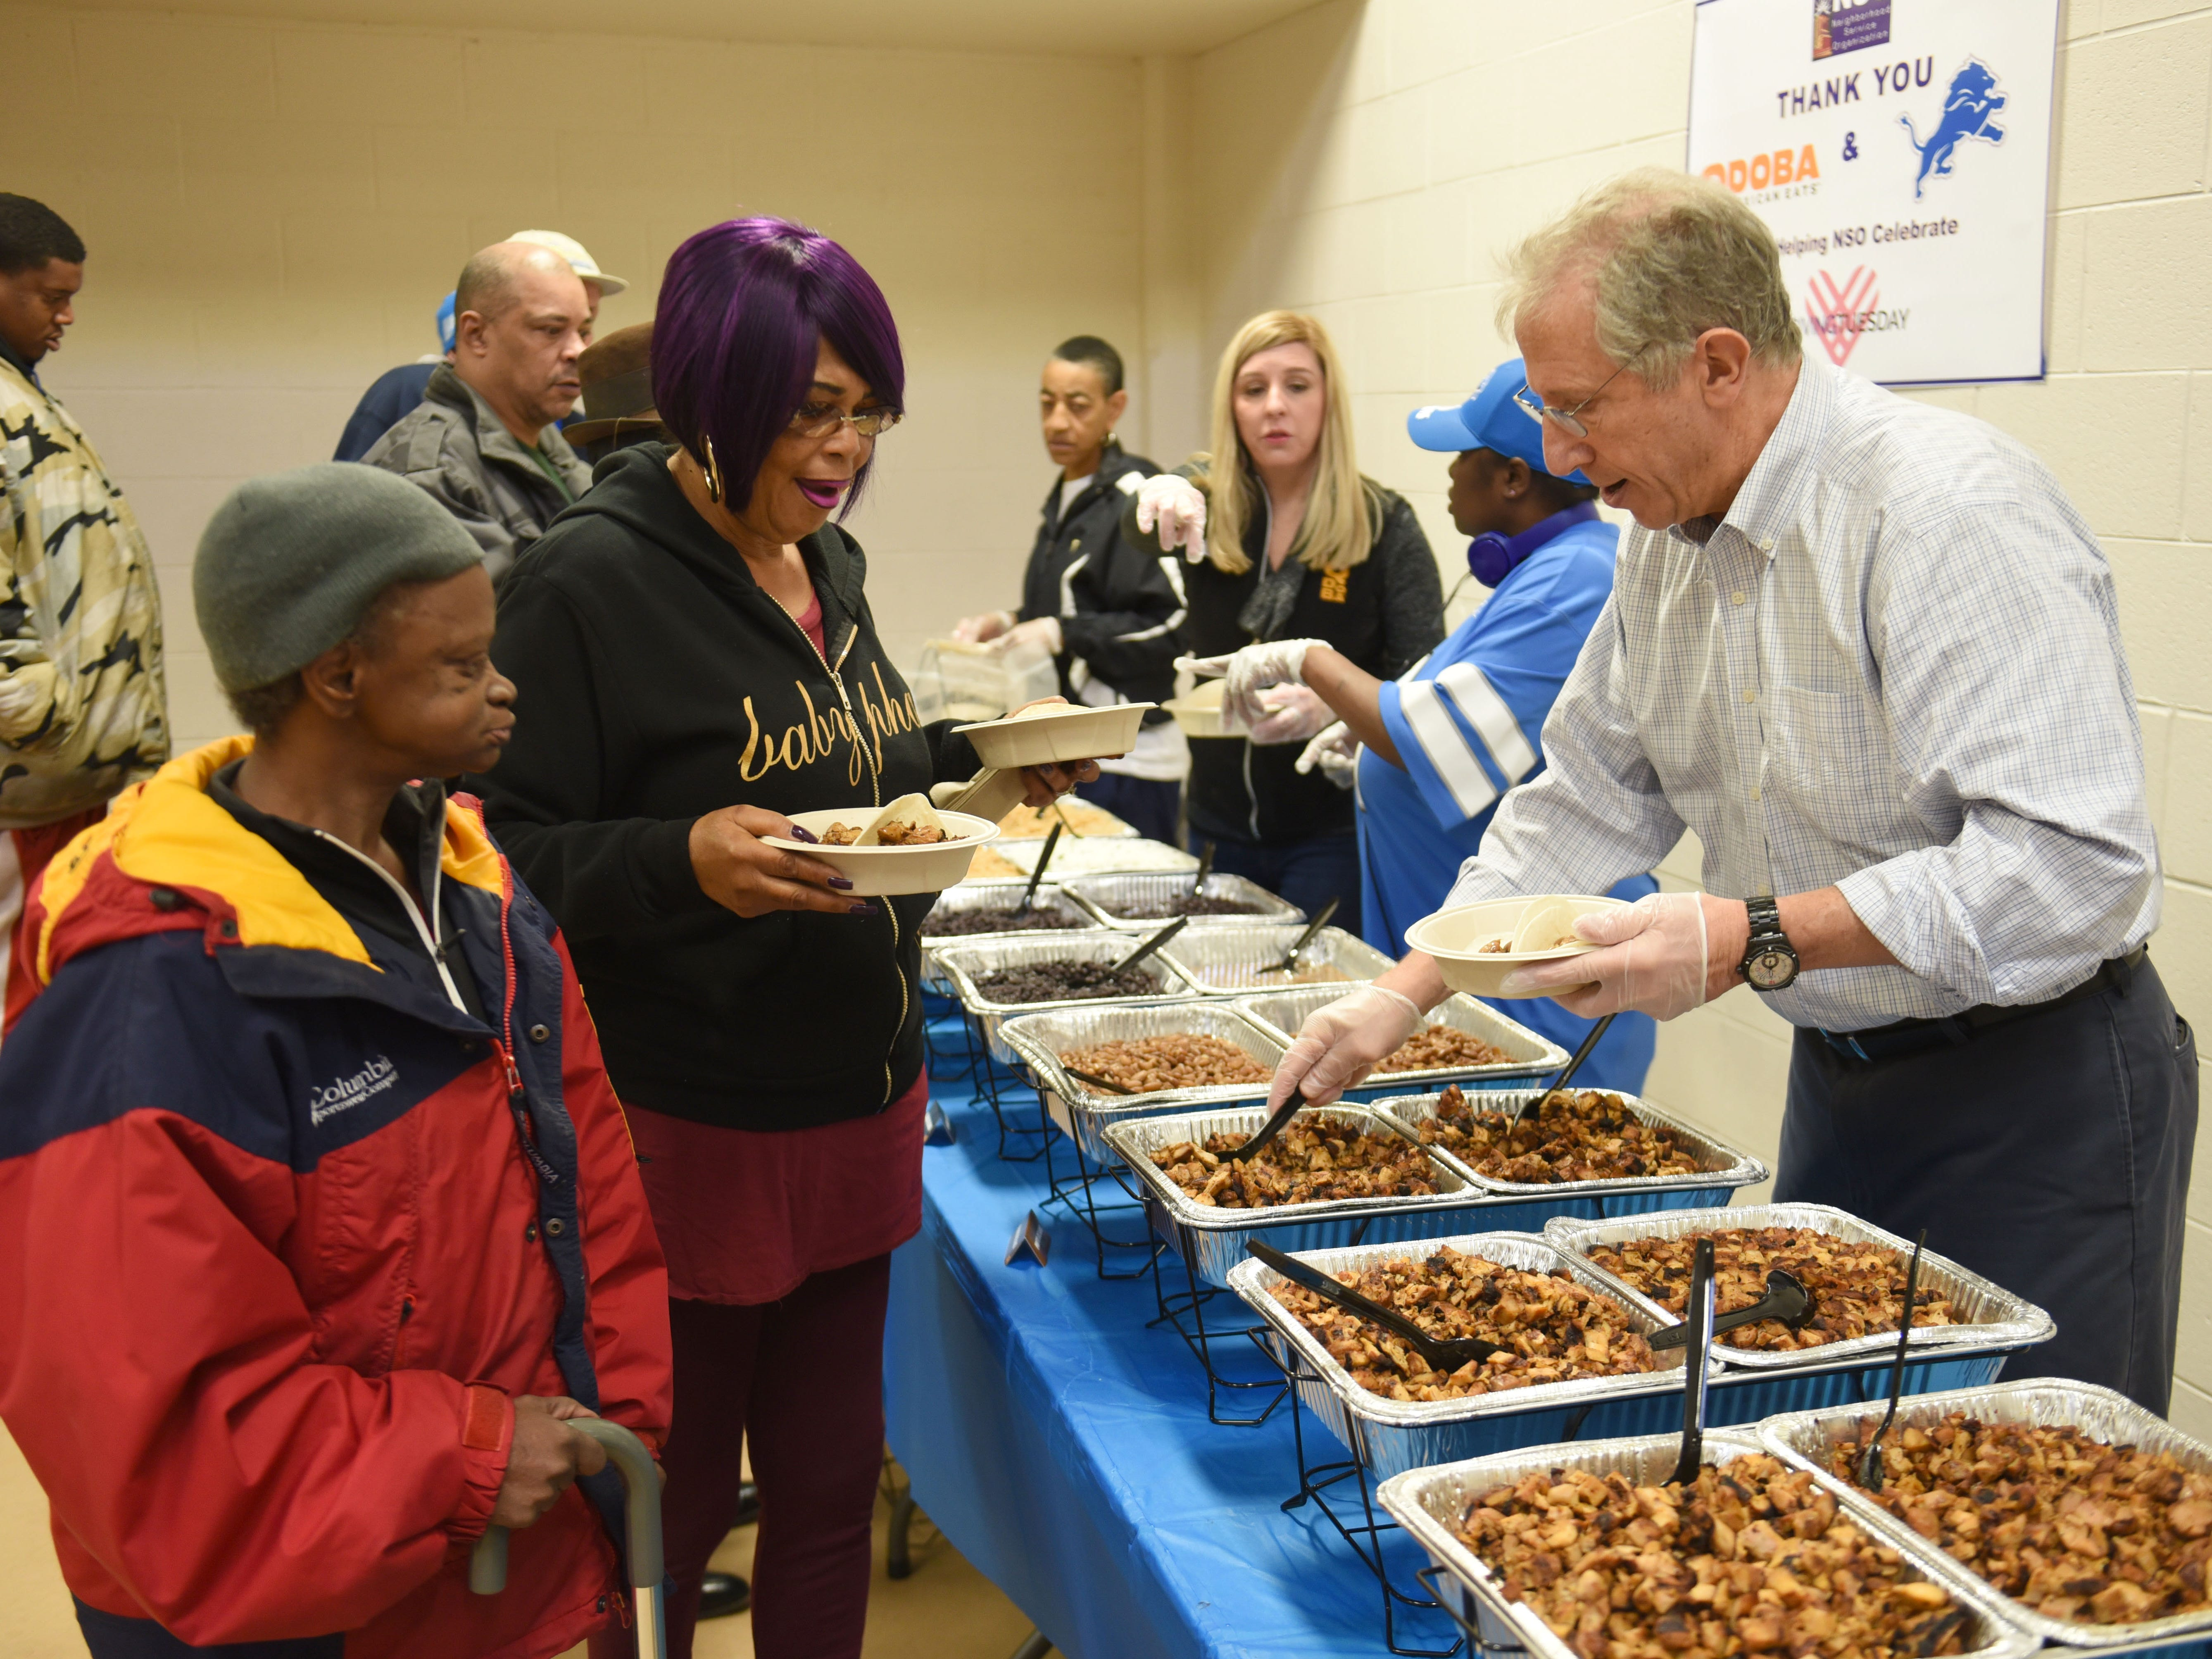 Dr. Richard Lichtenstein, right, chairman, Neighborhood Services Organization, serves clients a meal provided by Qdoba Mexican restaurant on Giving Tuesday.